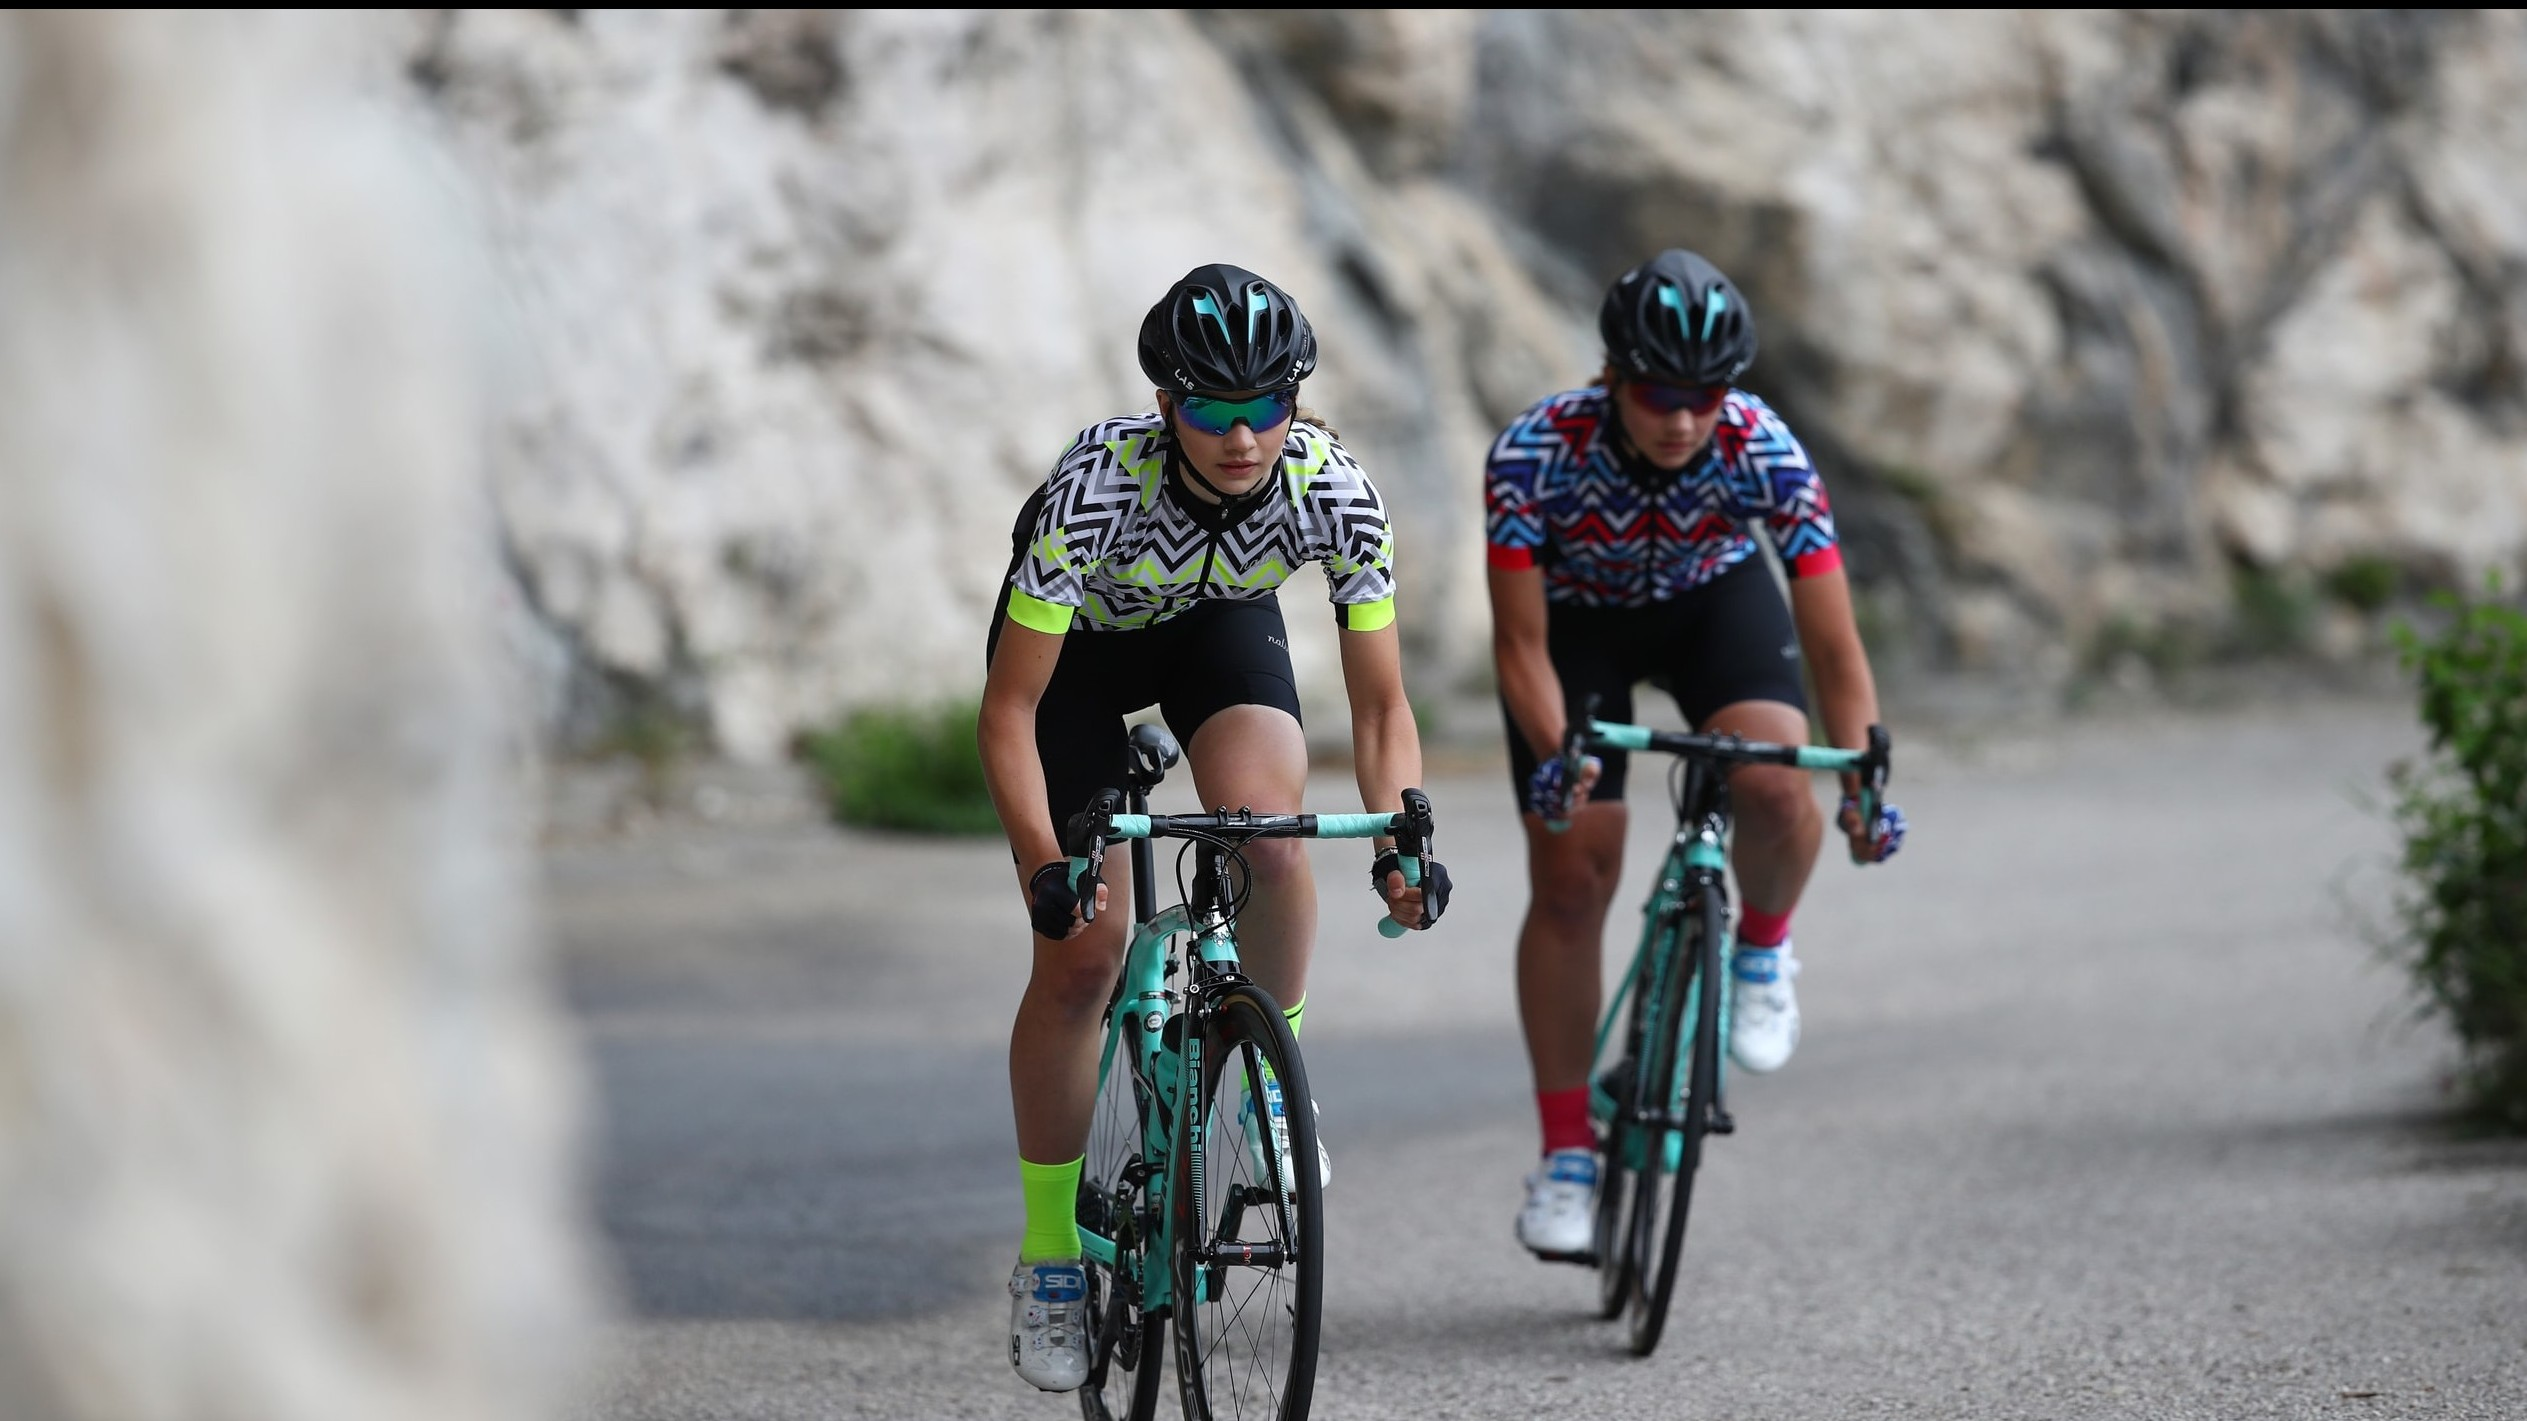 dc7d4cdb17a Cycling sportswear Made in Italy. Passion on you | Nalini